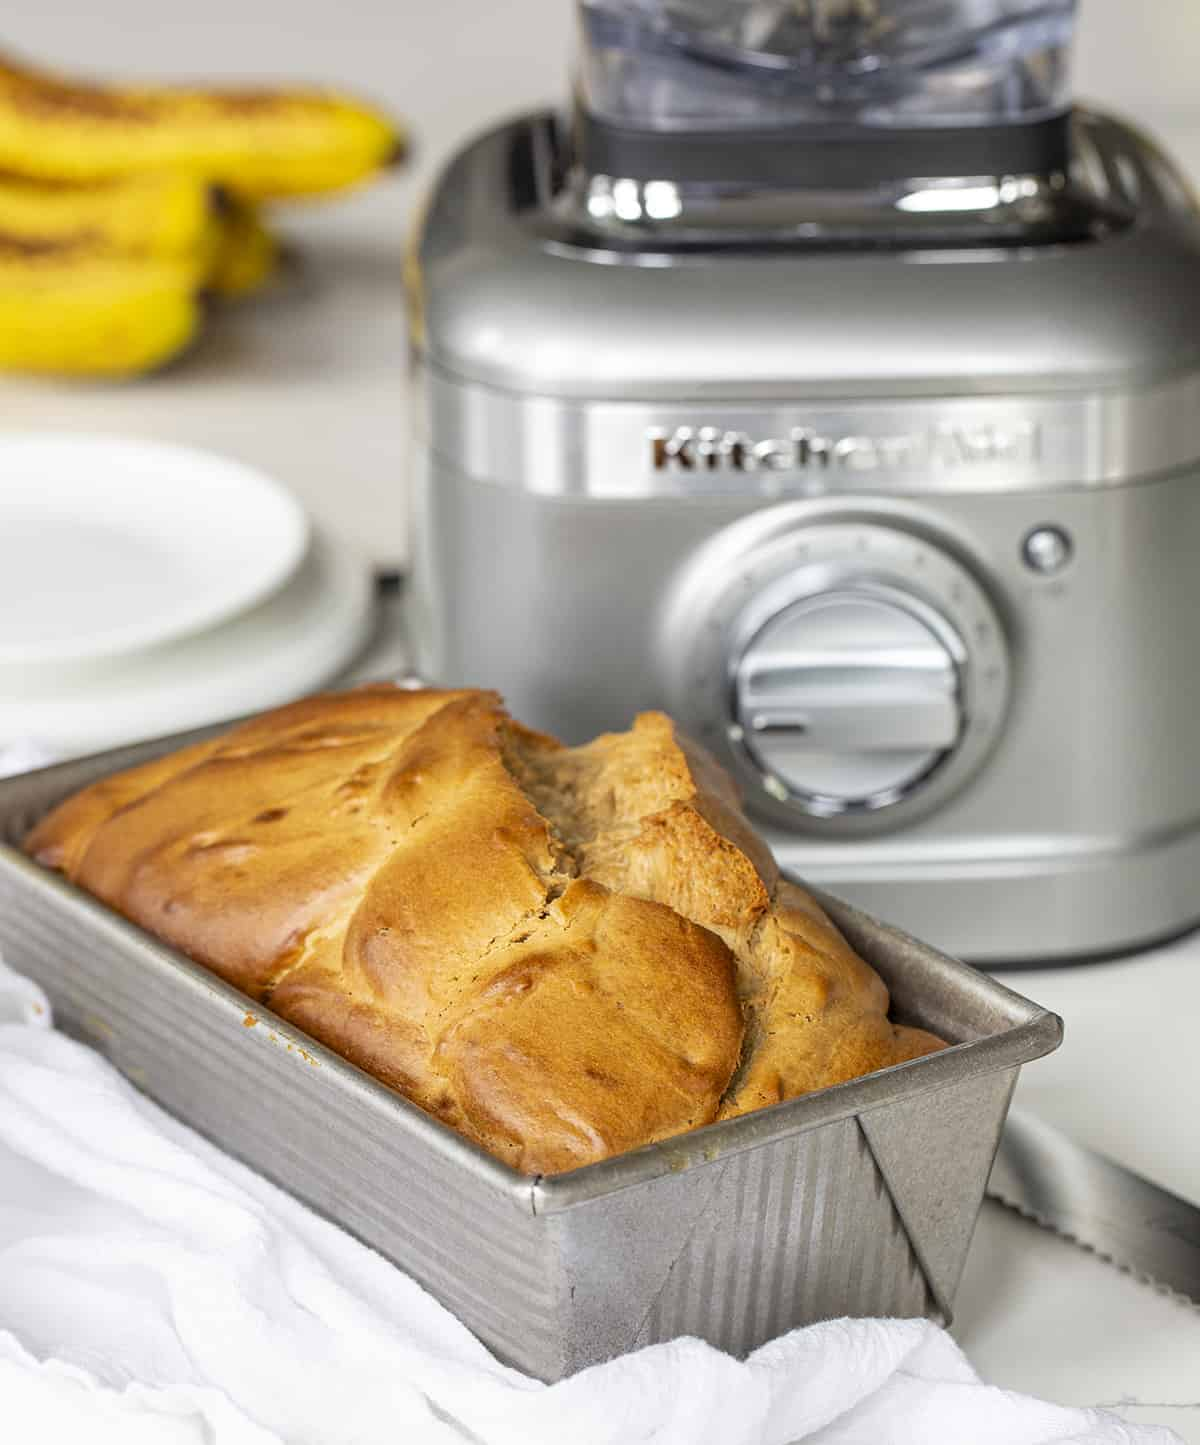 Peanut Butter Bread in Front of a Blender